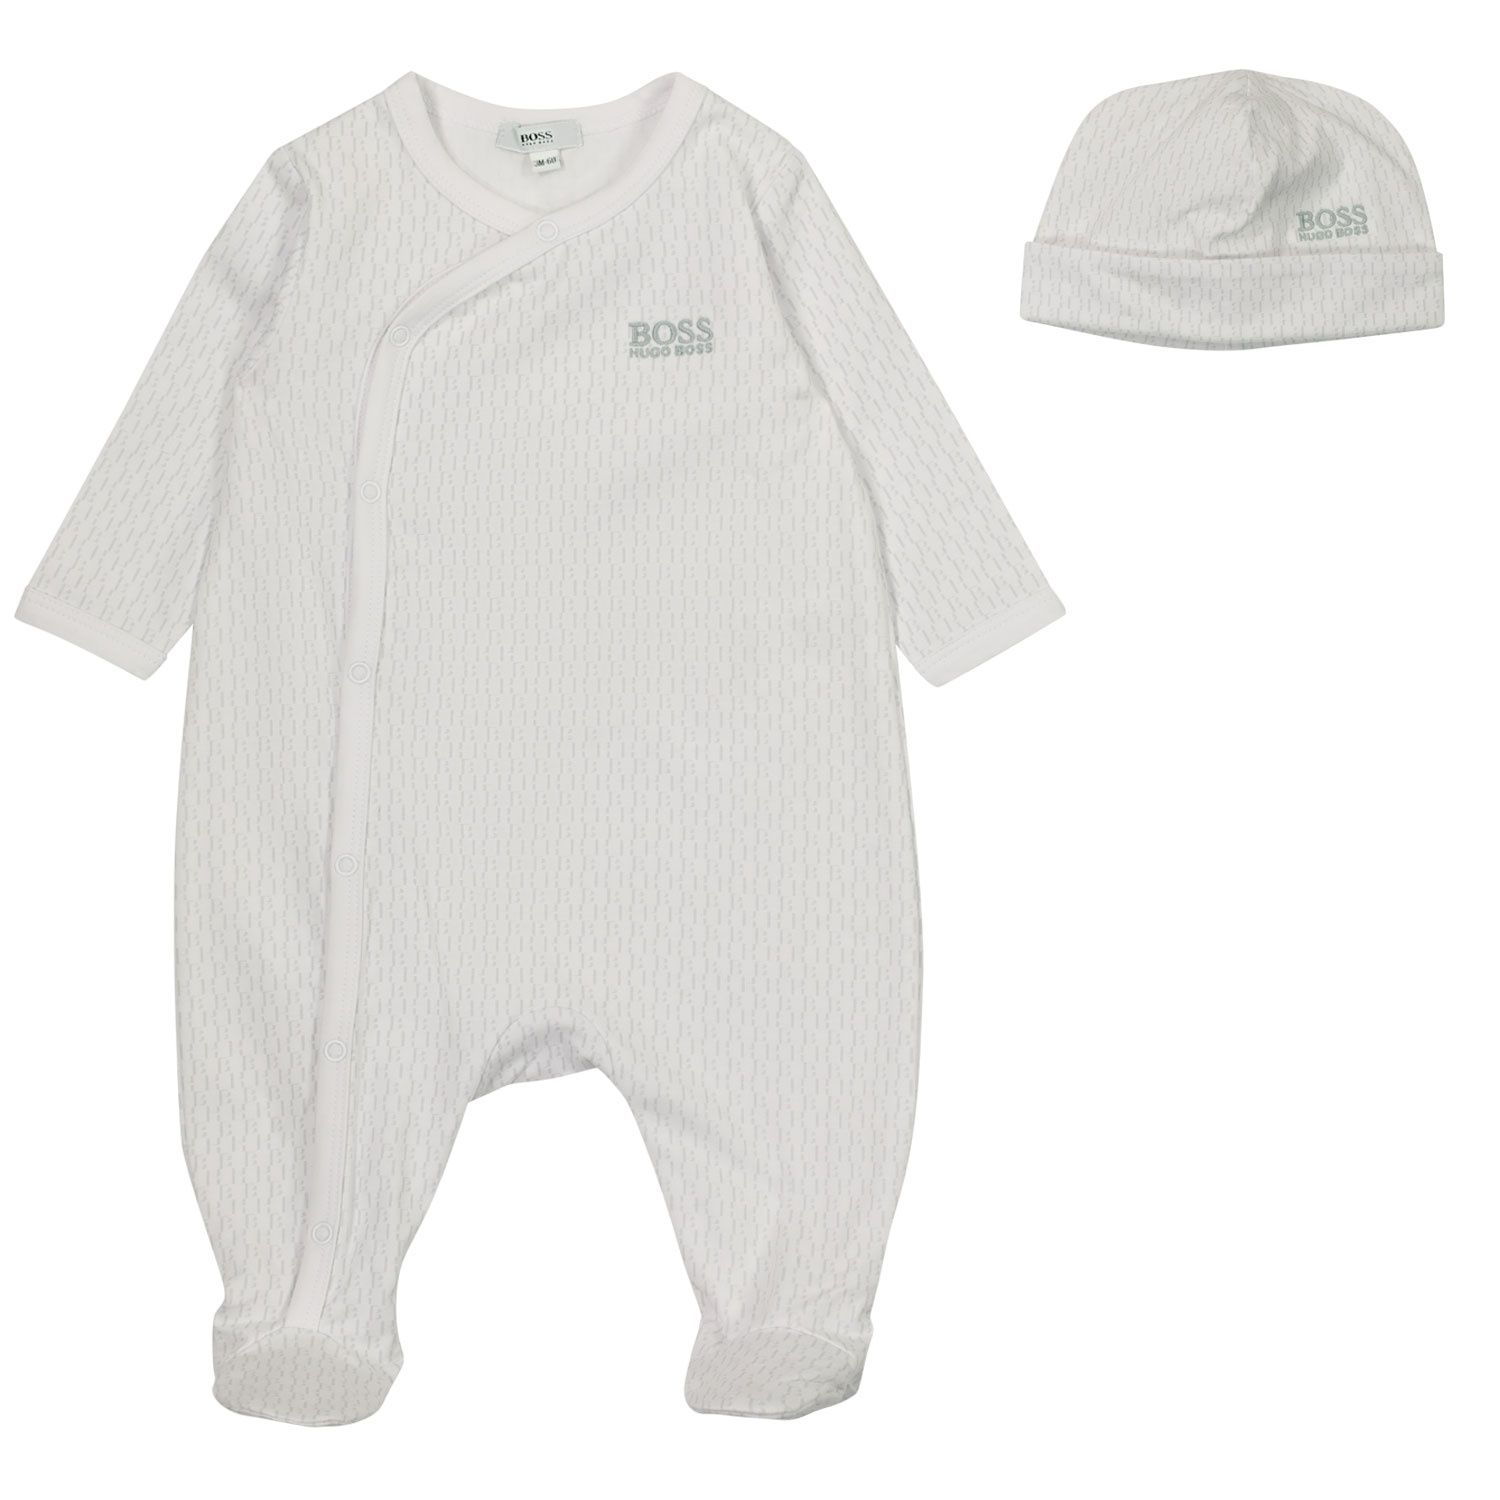 Picture of Boss J98322 baby playsuit white